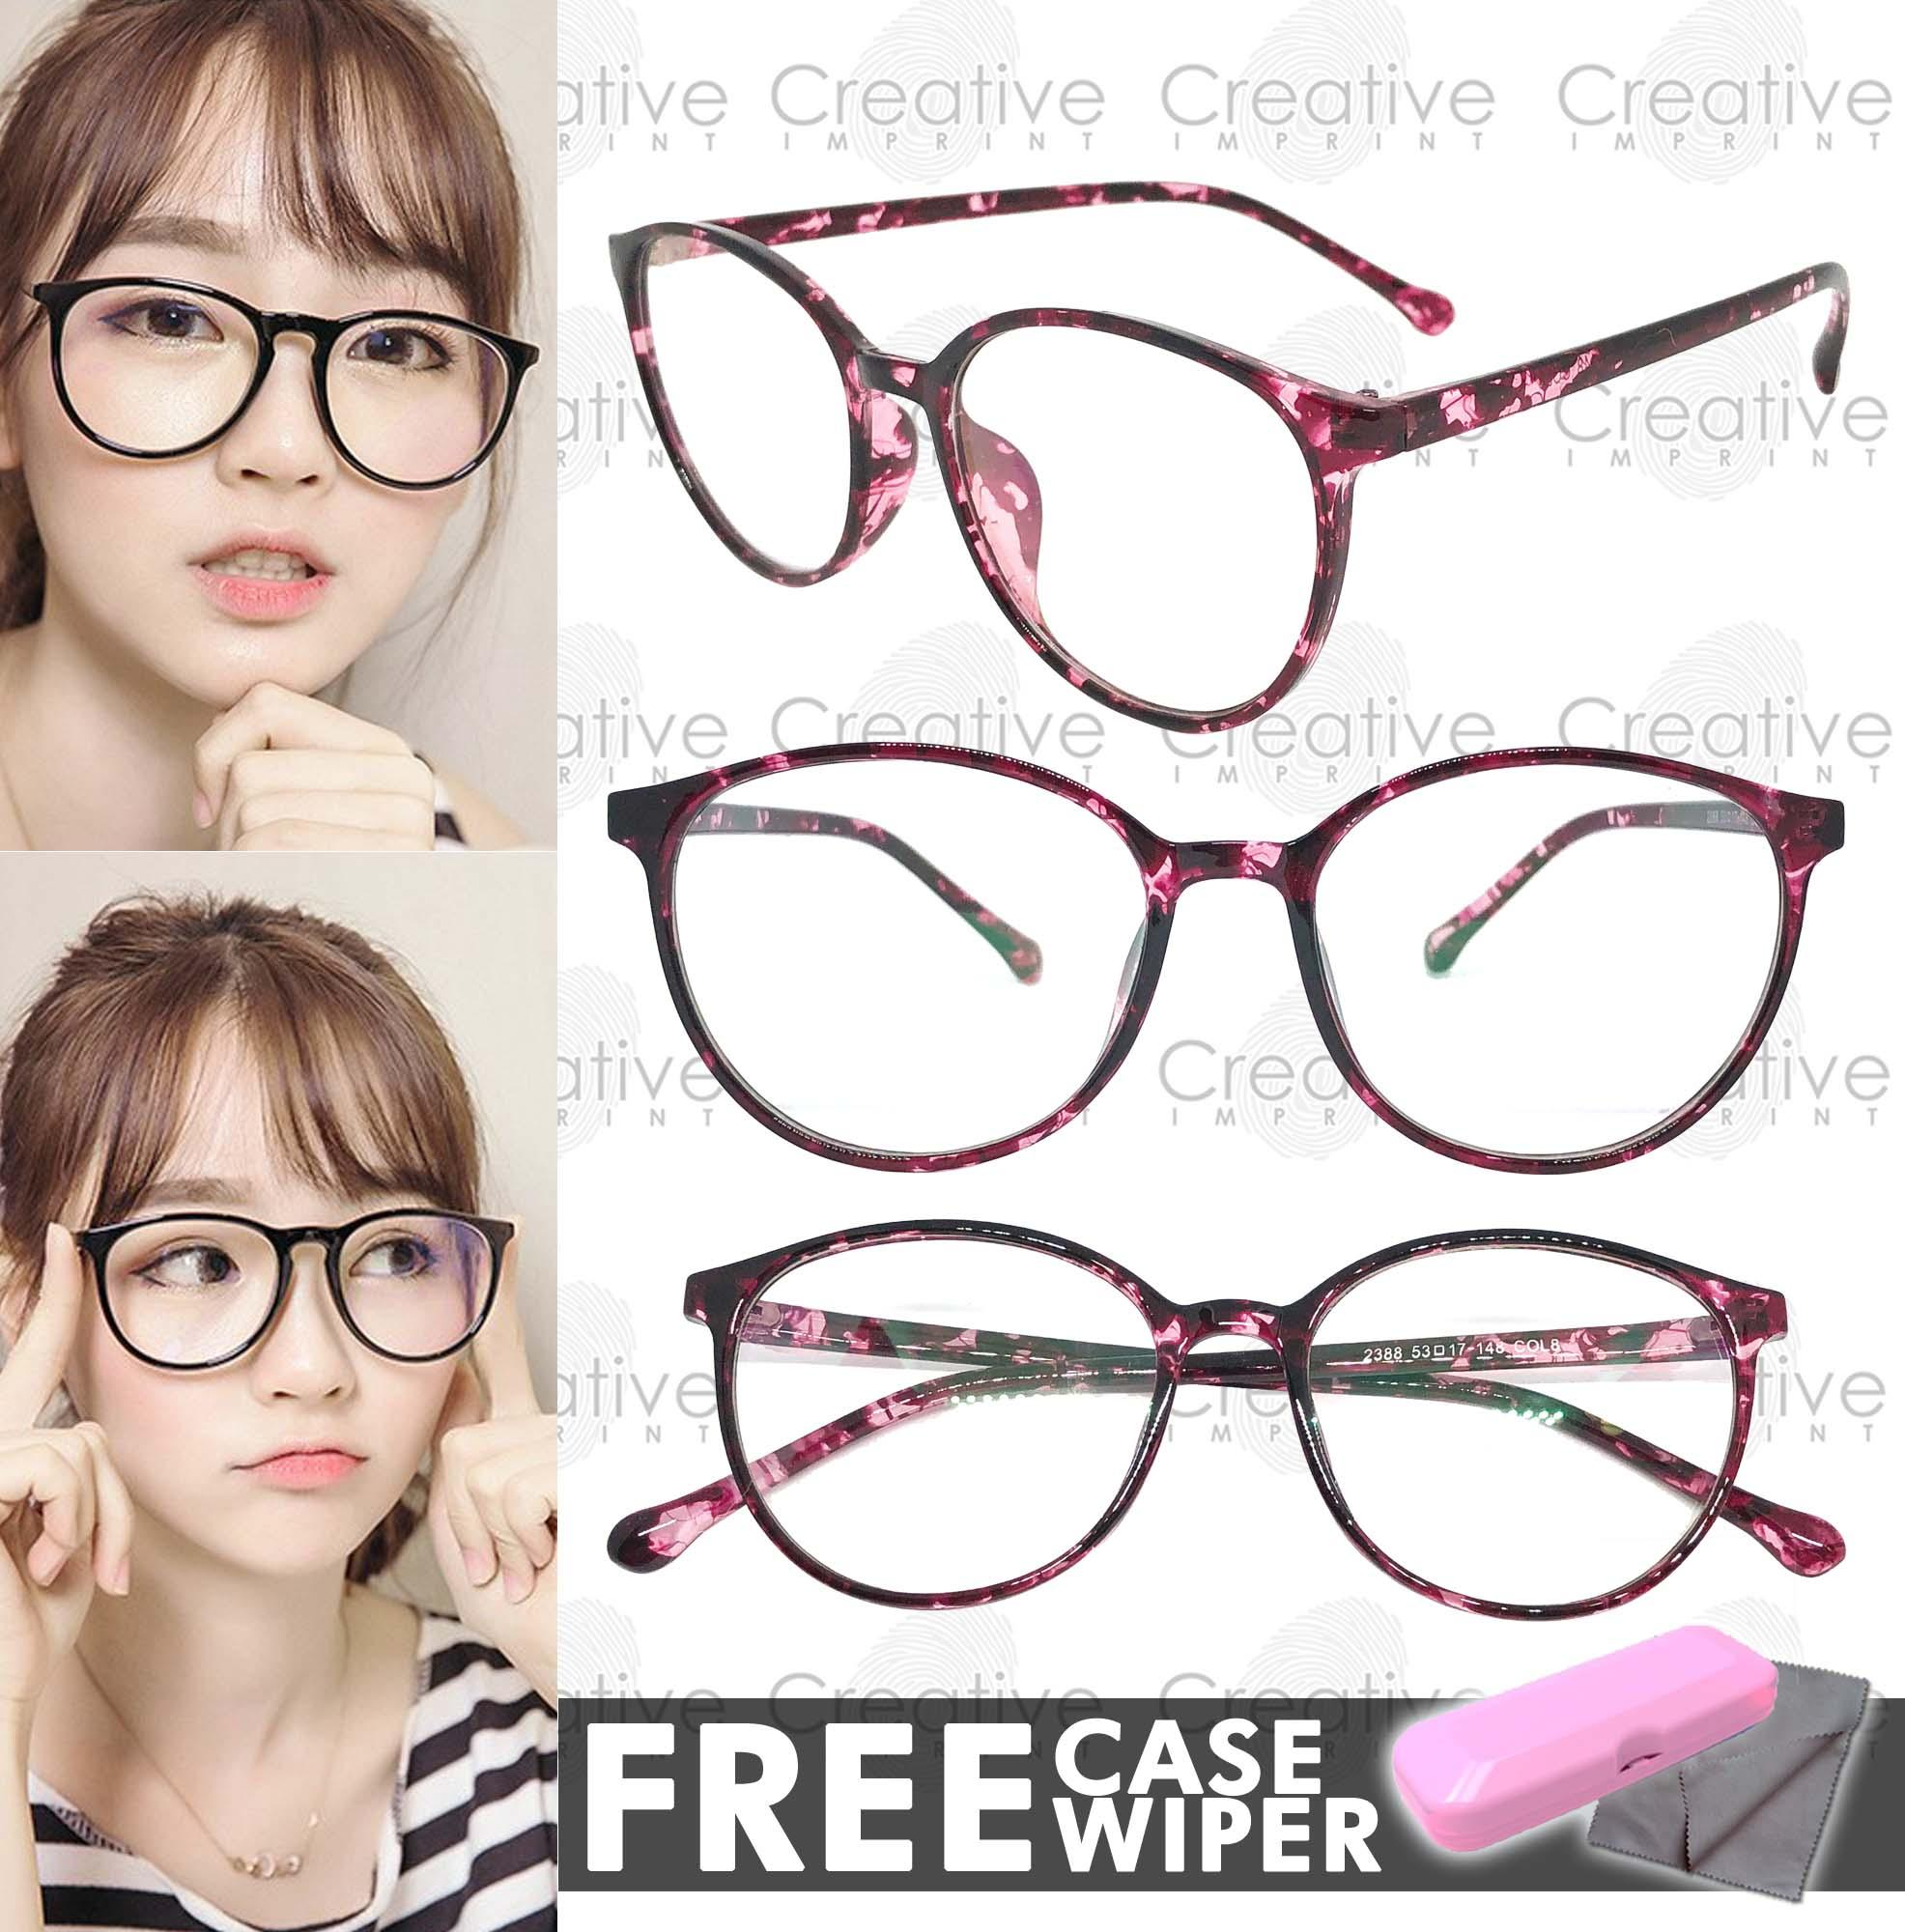 991016372c60 Creative Imprint Eyeglasses Anti-Radiation Lens ( 05 Animal Print Purple)  Anti-